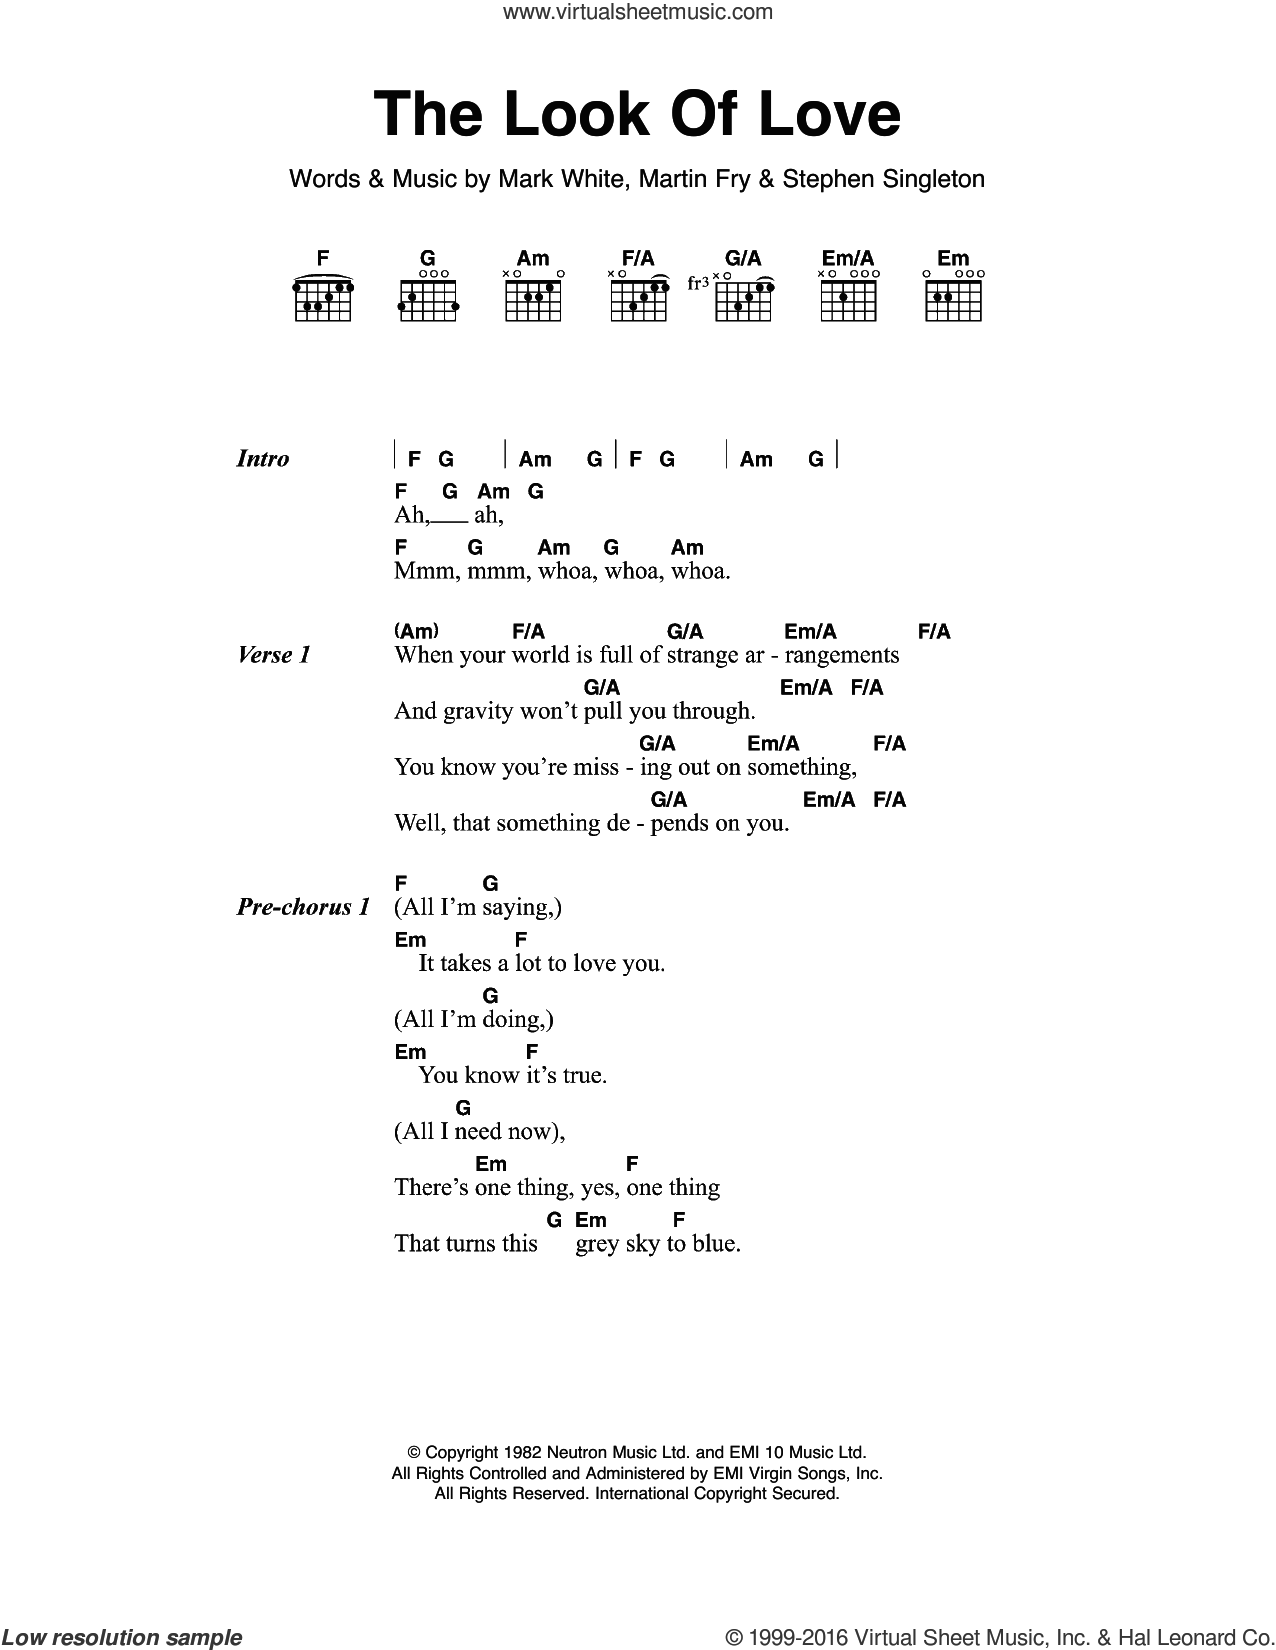 The Look Of Love sheet music for guitar (chords) by Stephen Singleton